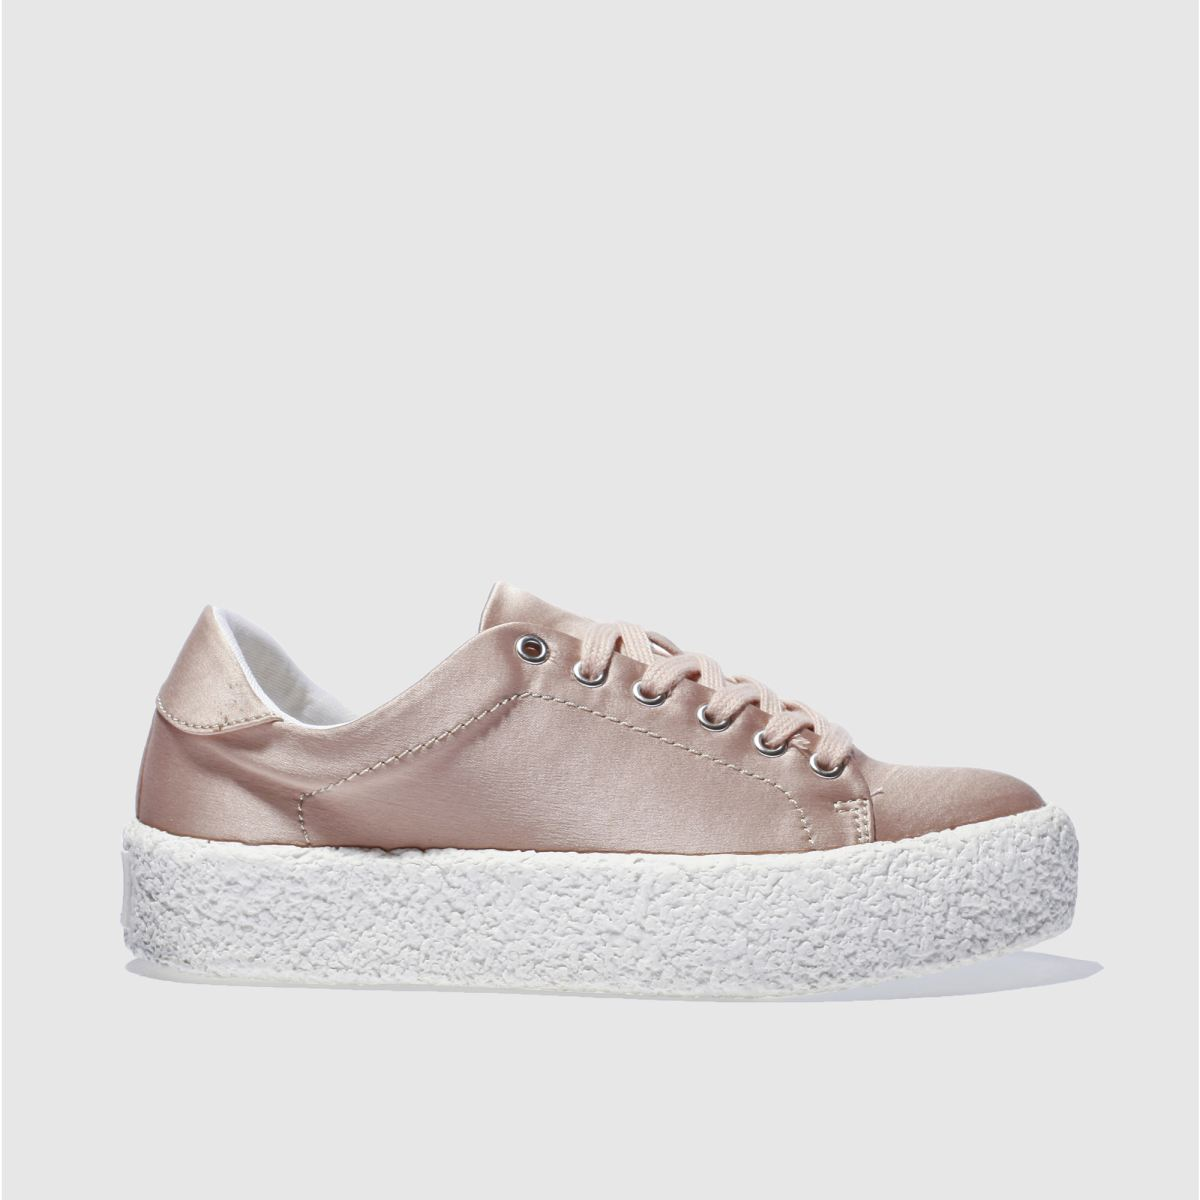 schuh pale pink perfect match flat shoes